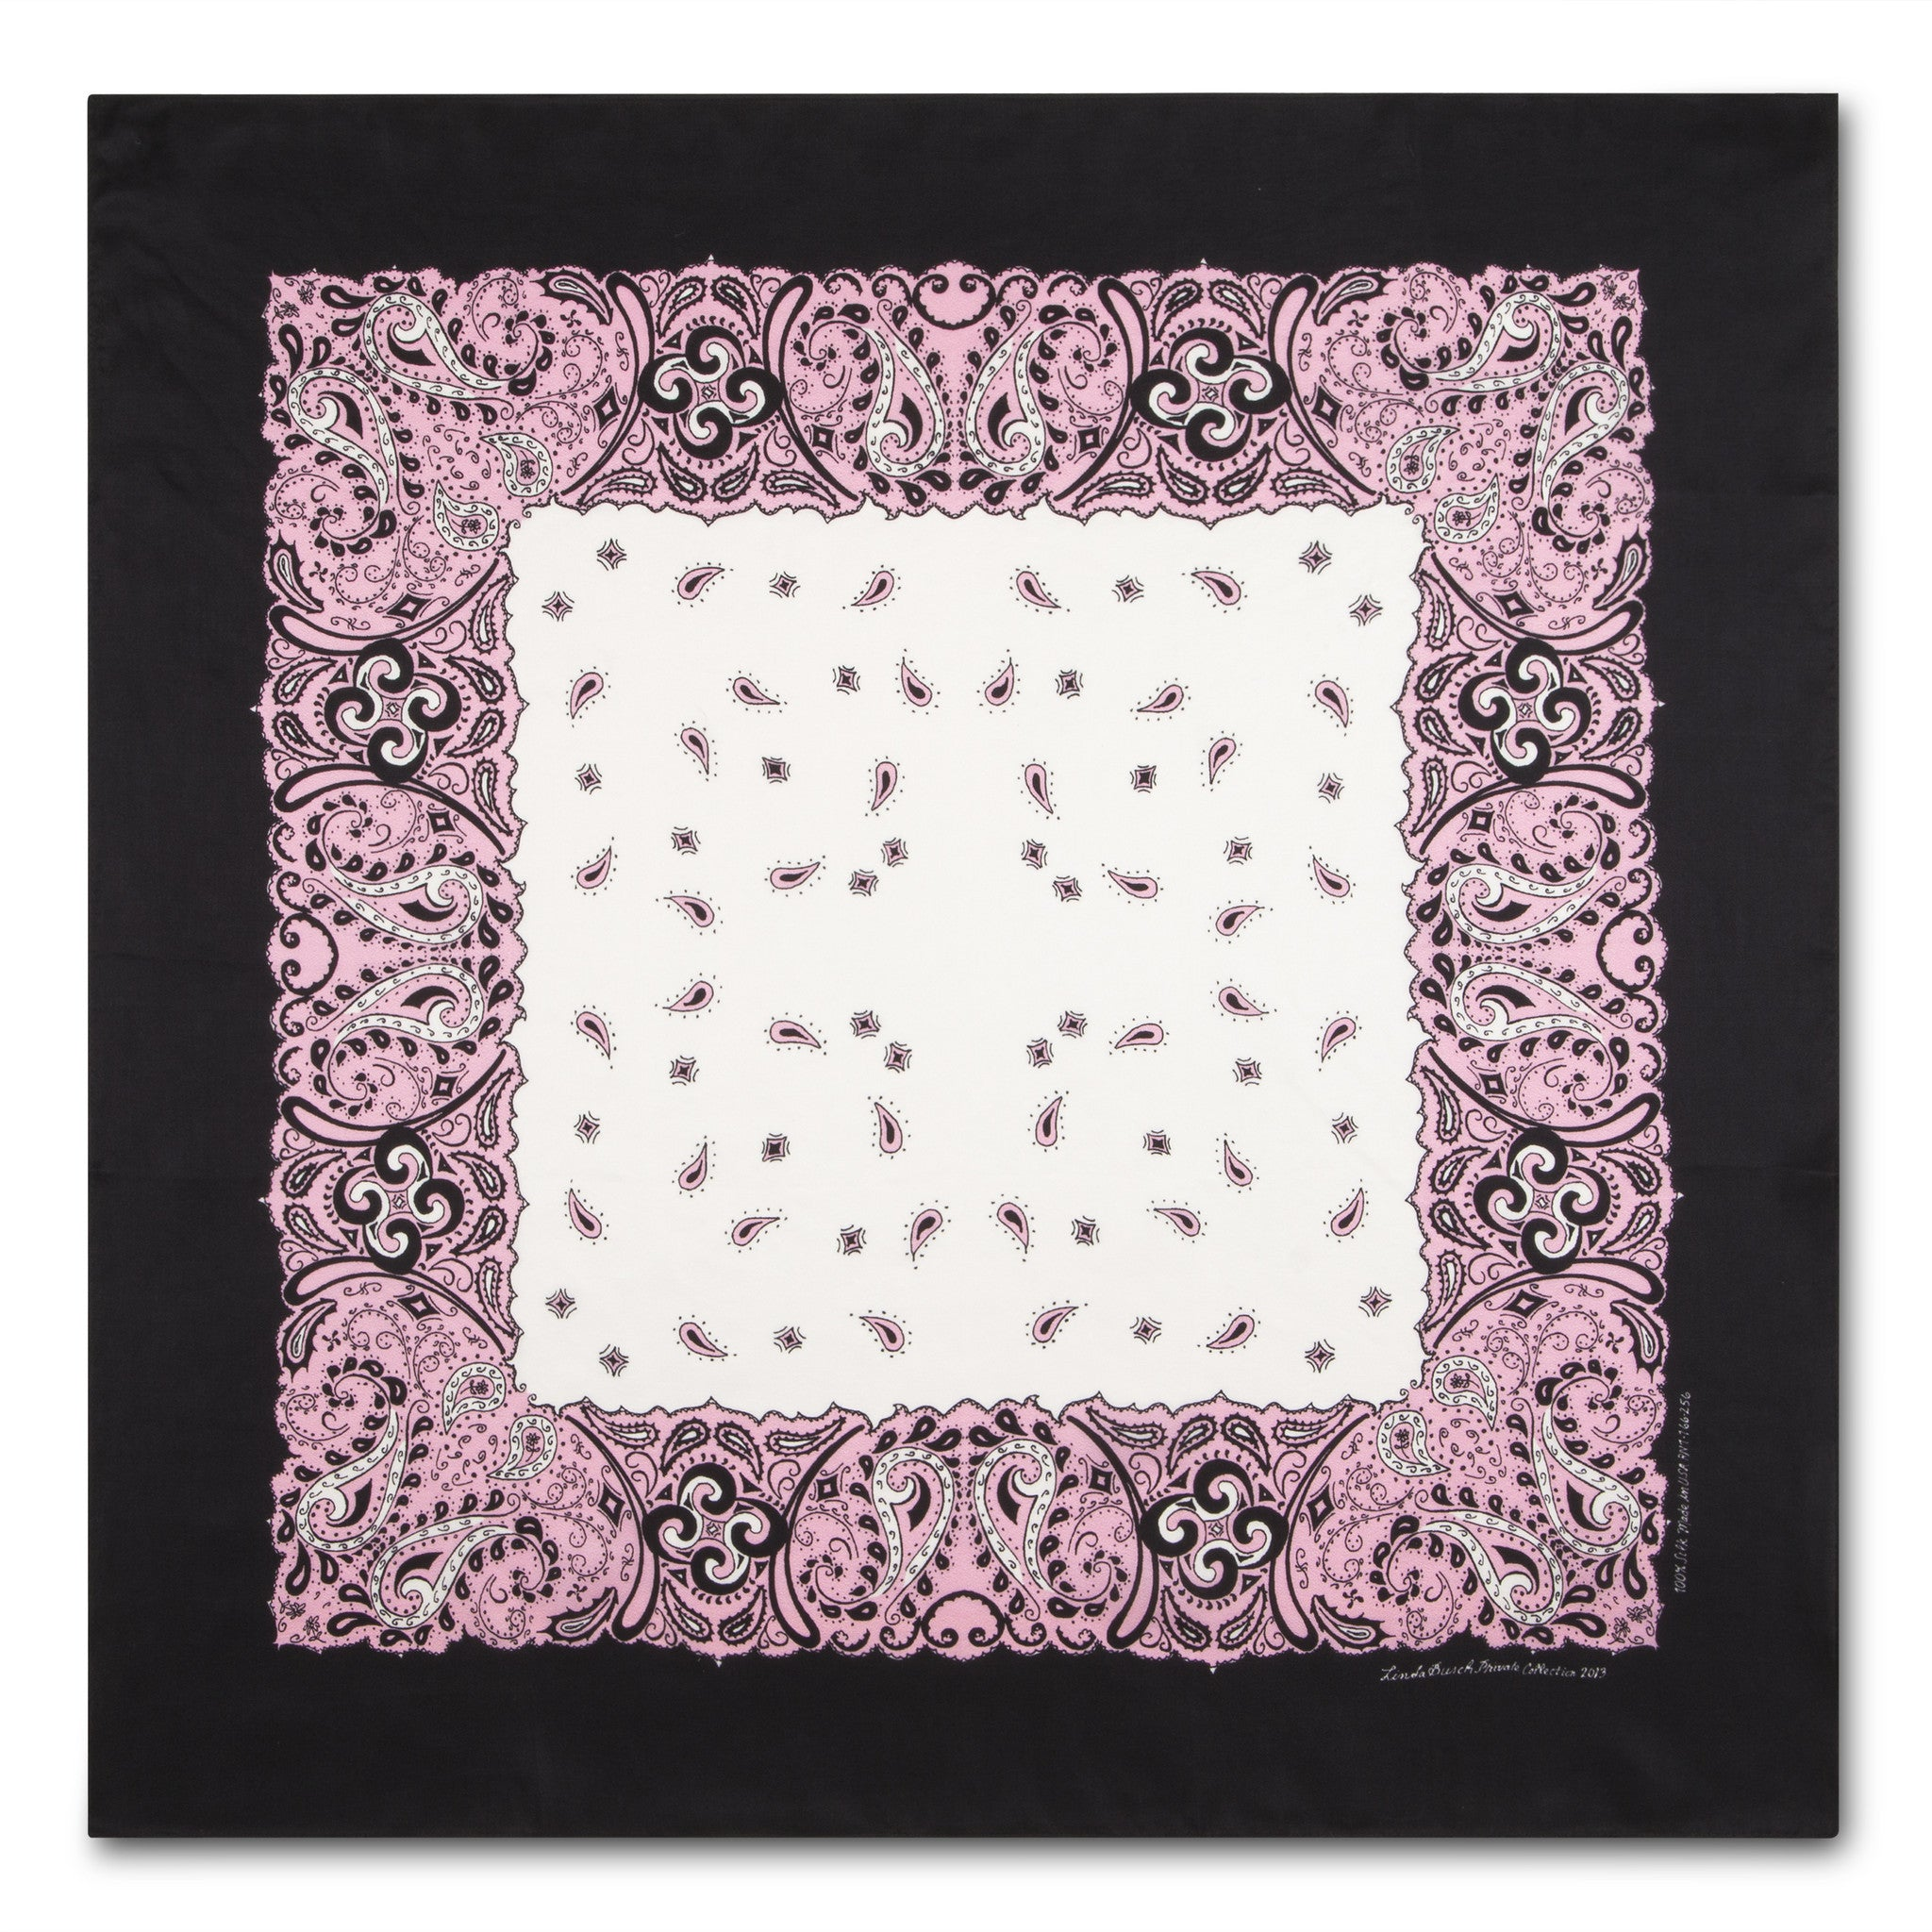 Silk Bandanna in Pink, White, Black